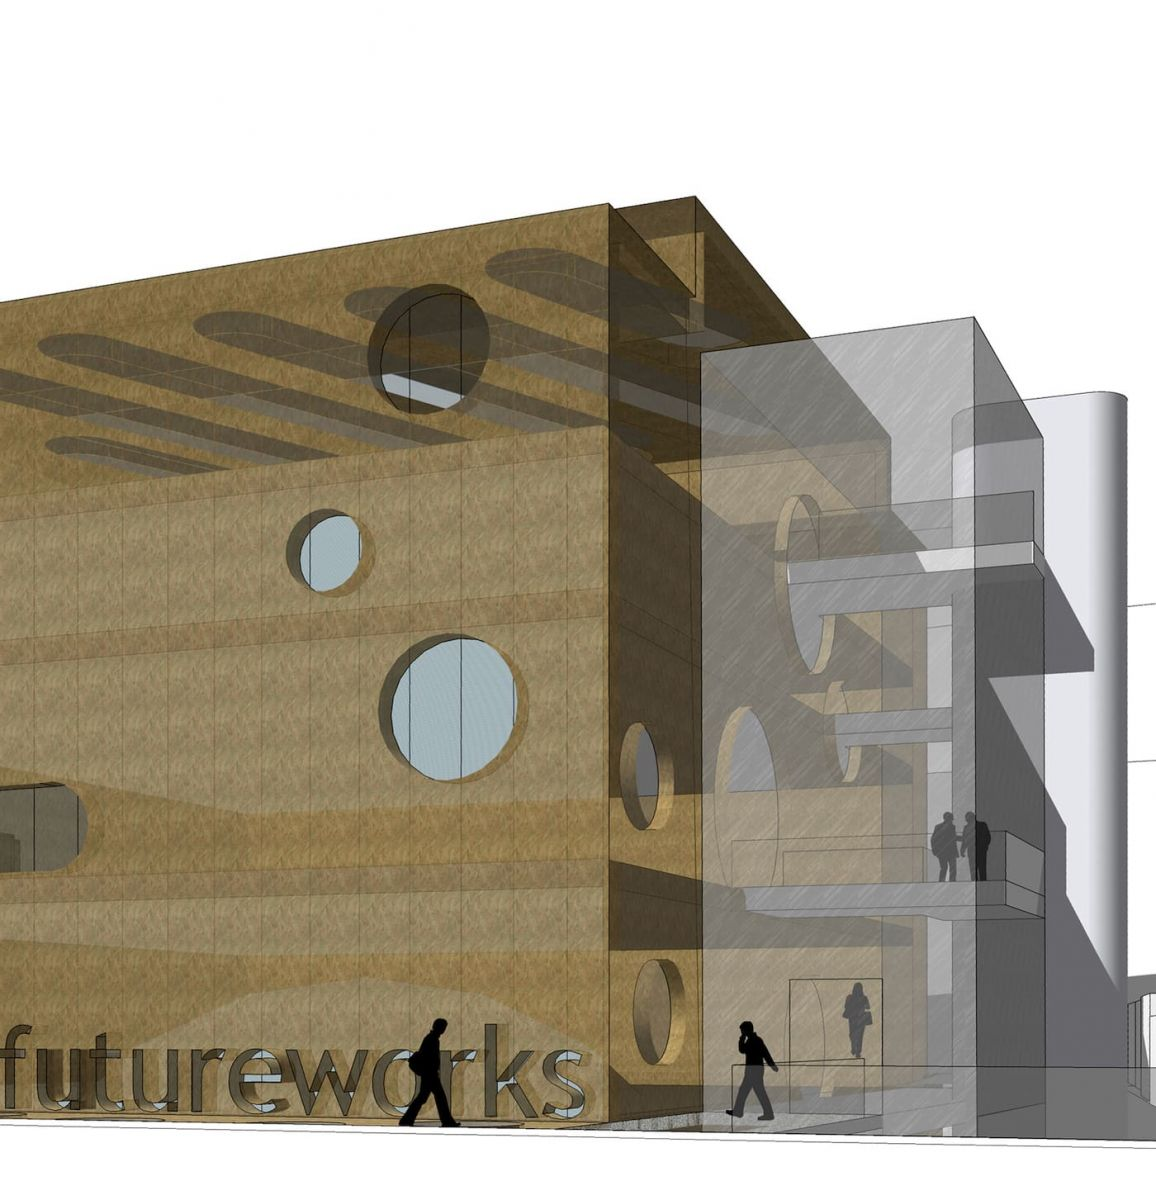 ScienceWorks Project - Adrian James Architects, Oxford